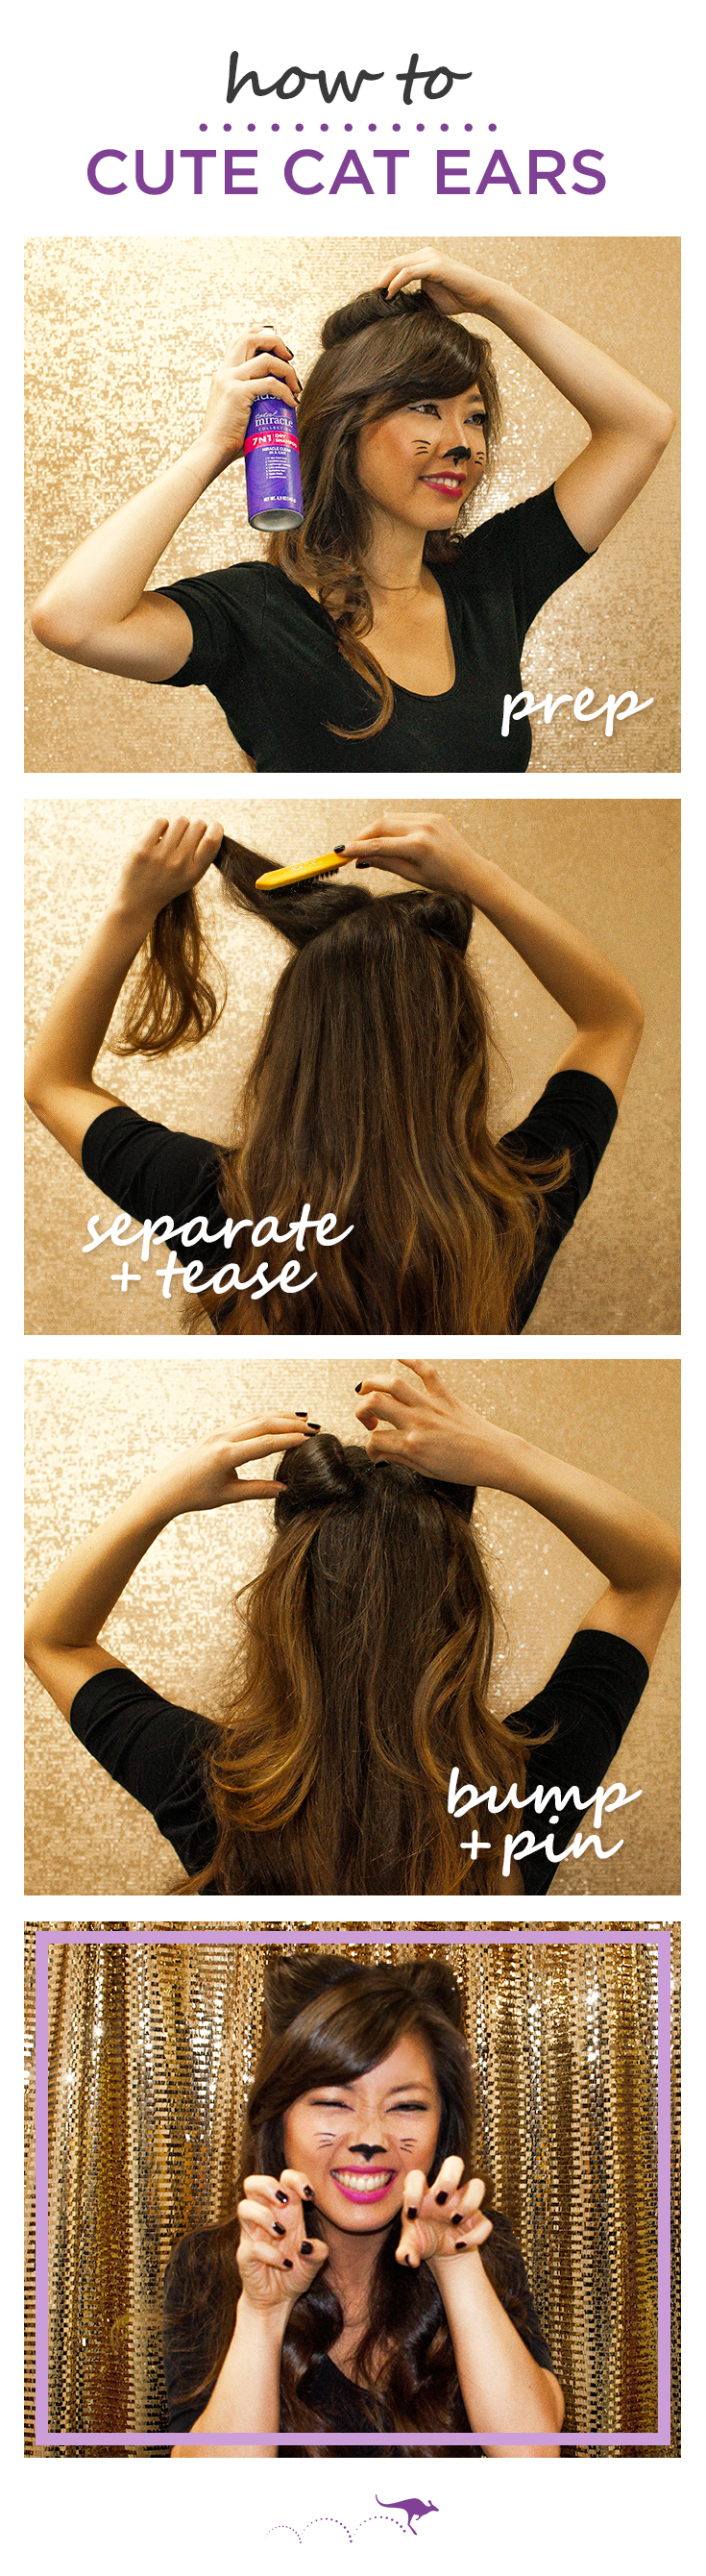 A Cute Cat Ears Hairstyle Is A Great Last Minute Diy Halloween Costume Here S 3 Easy Steps From Celebrity Stylist Sarahpotemp Hair Styles Halloween Hair Hair